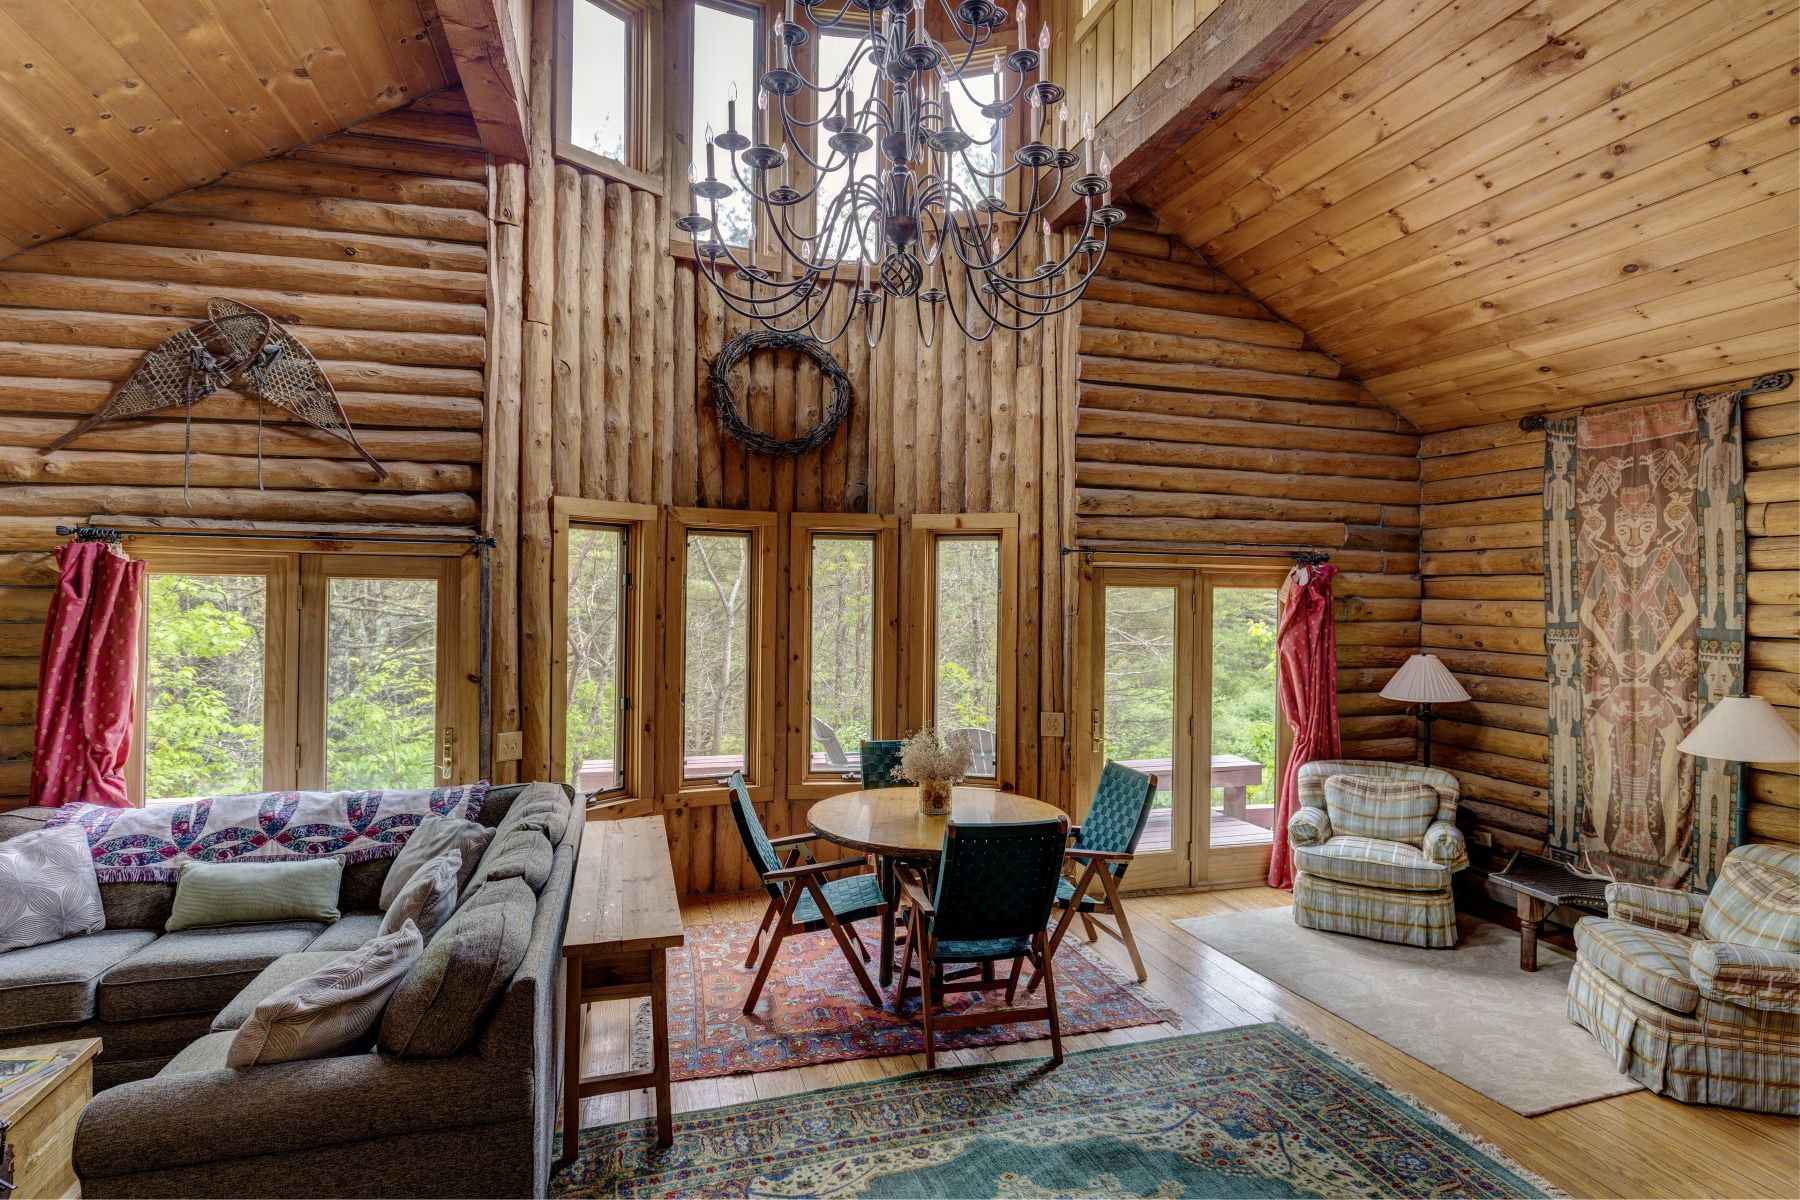 Single Family Homes for Sale at The Hartland Preserve 11 Draper Road Hartland, Vermont 05048 United States